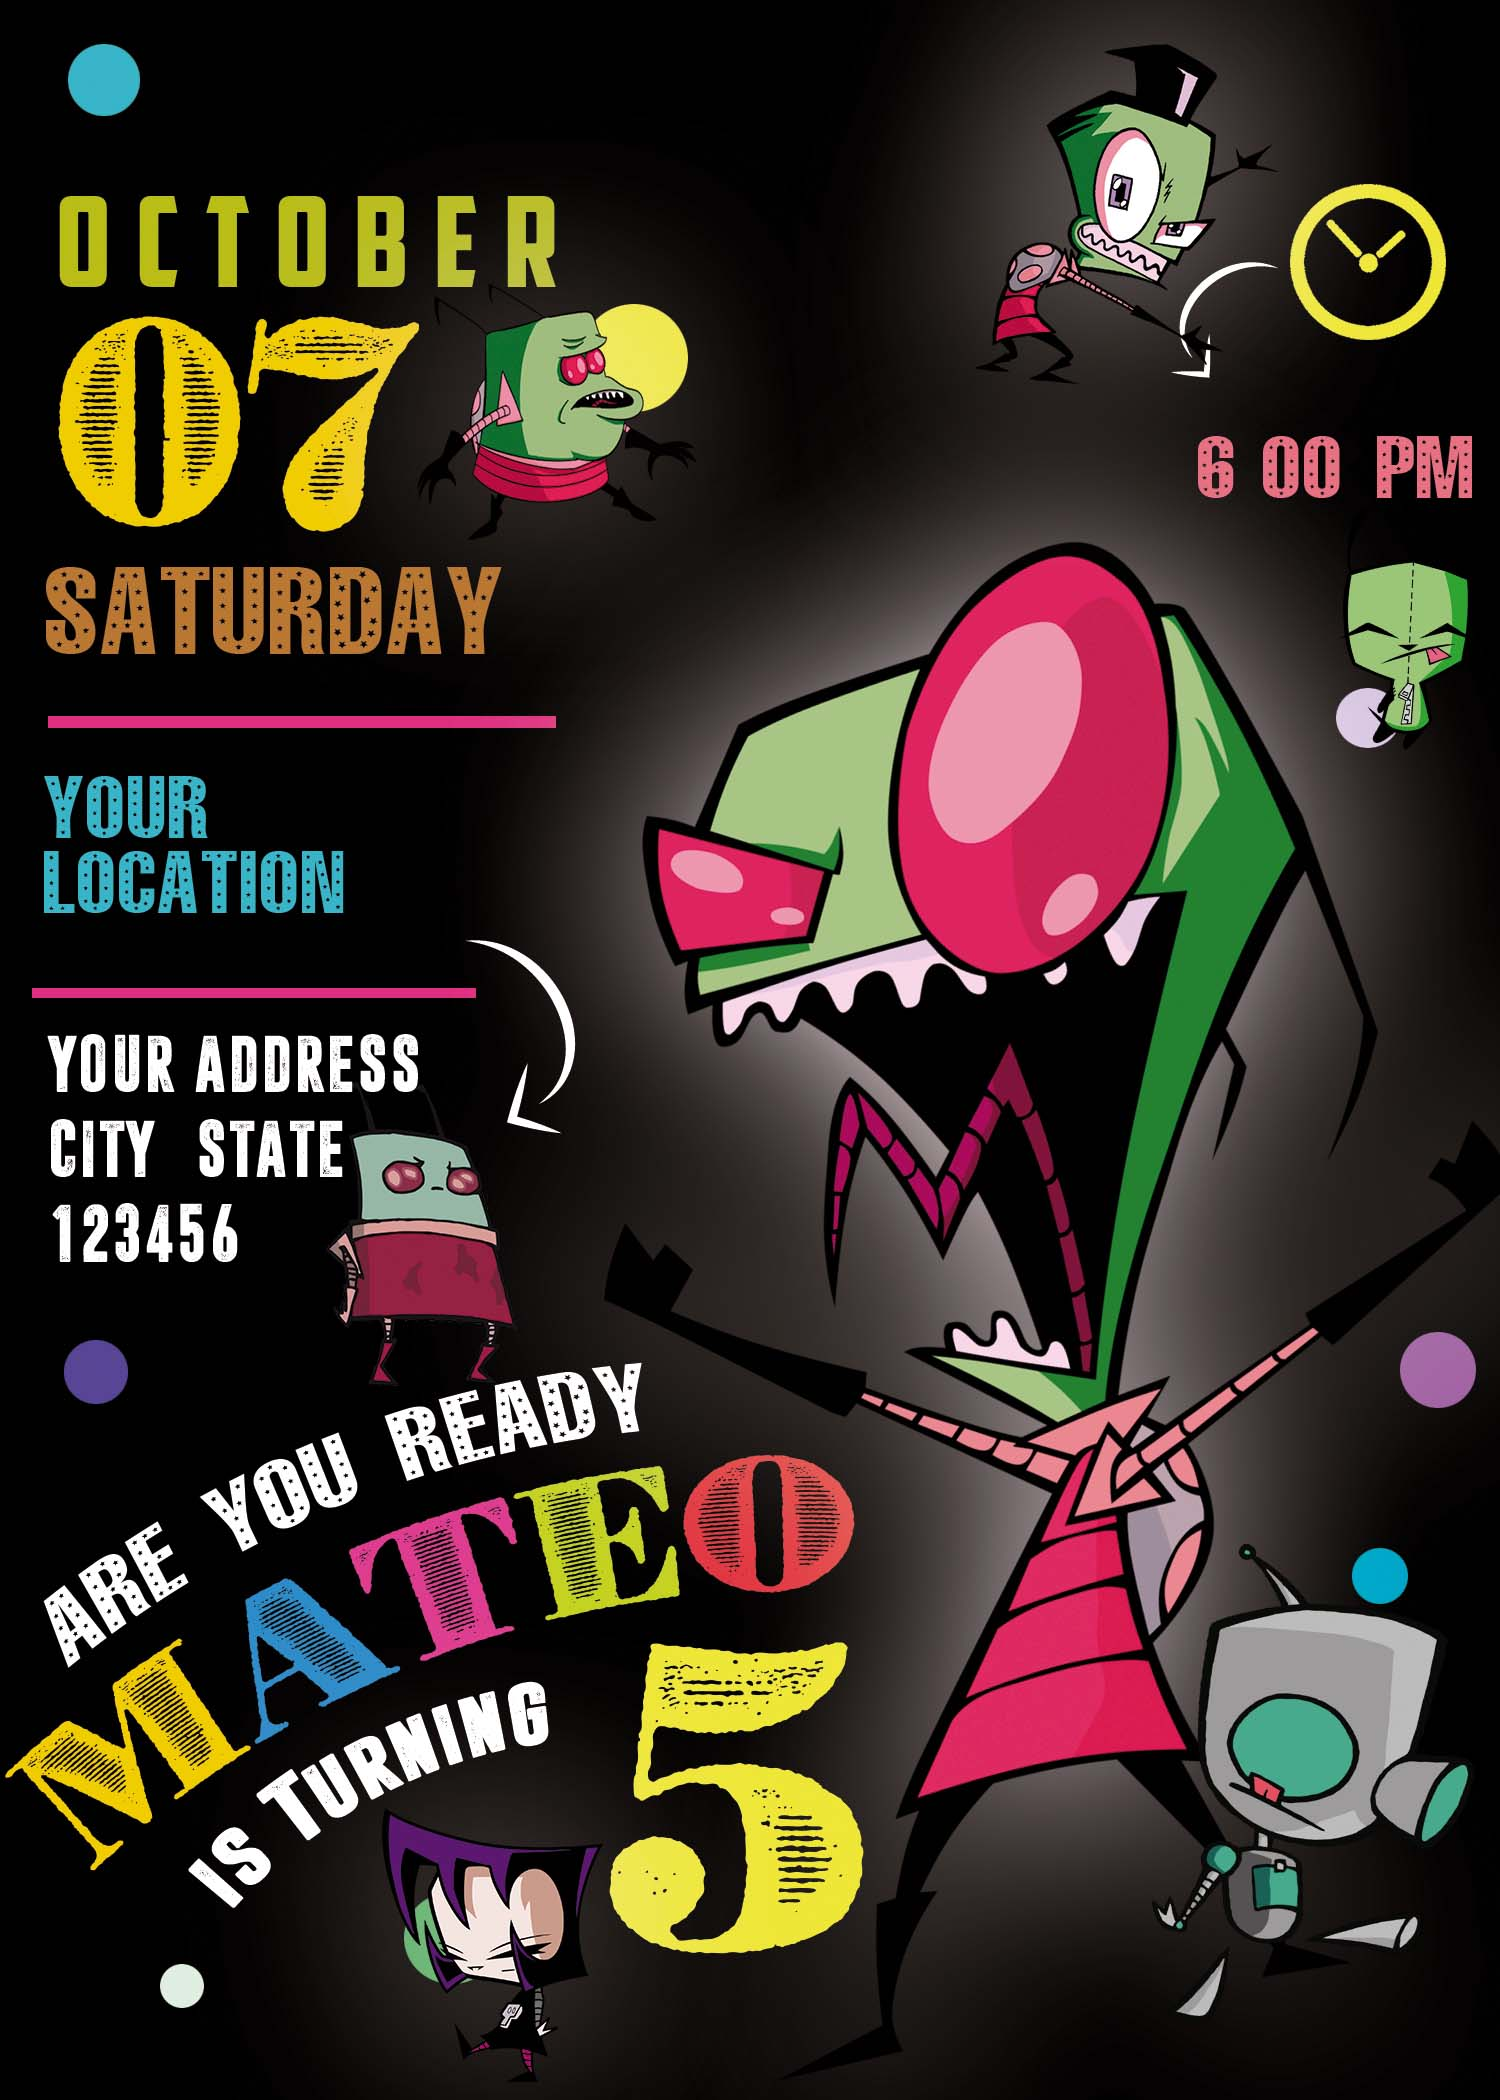 Invader Zim Birthday Party Invitation Amazing Designs Us